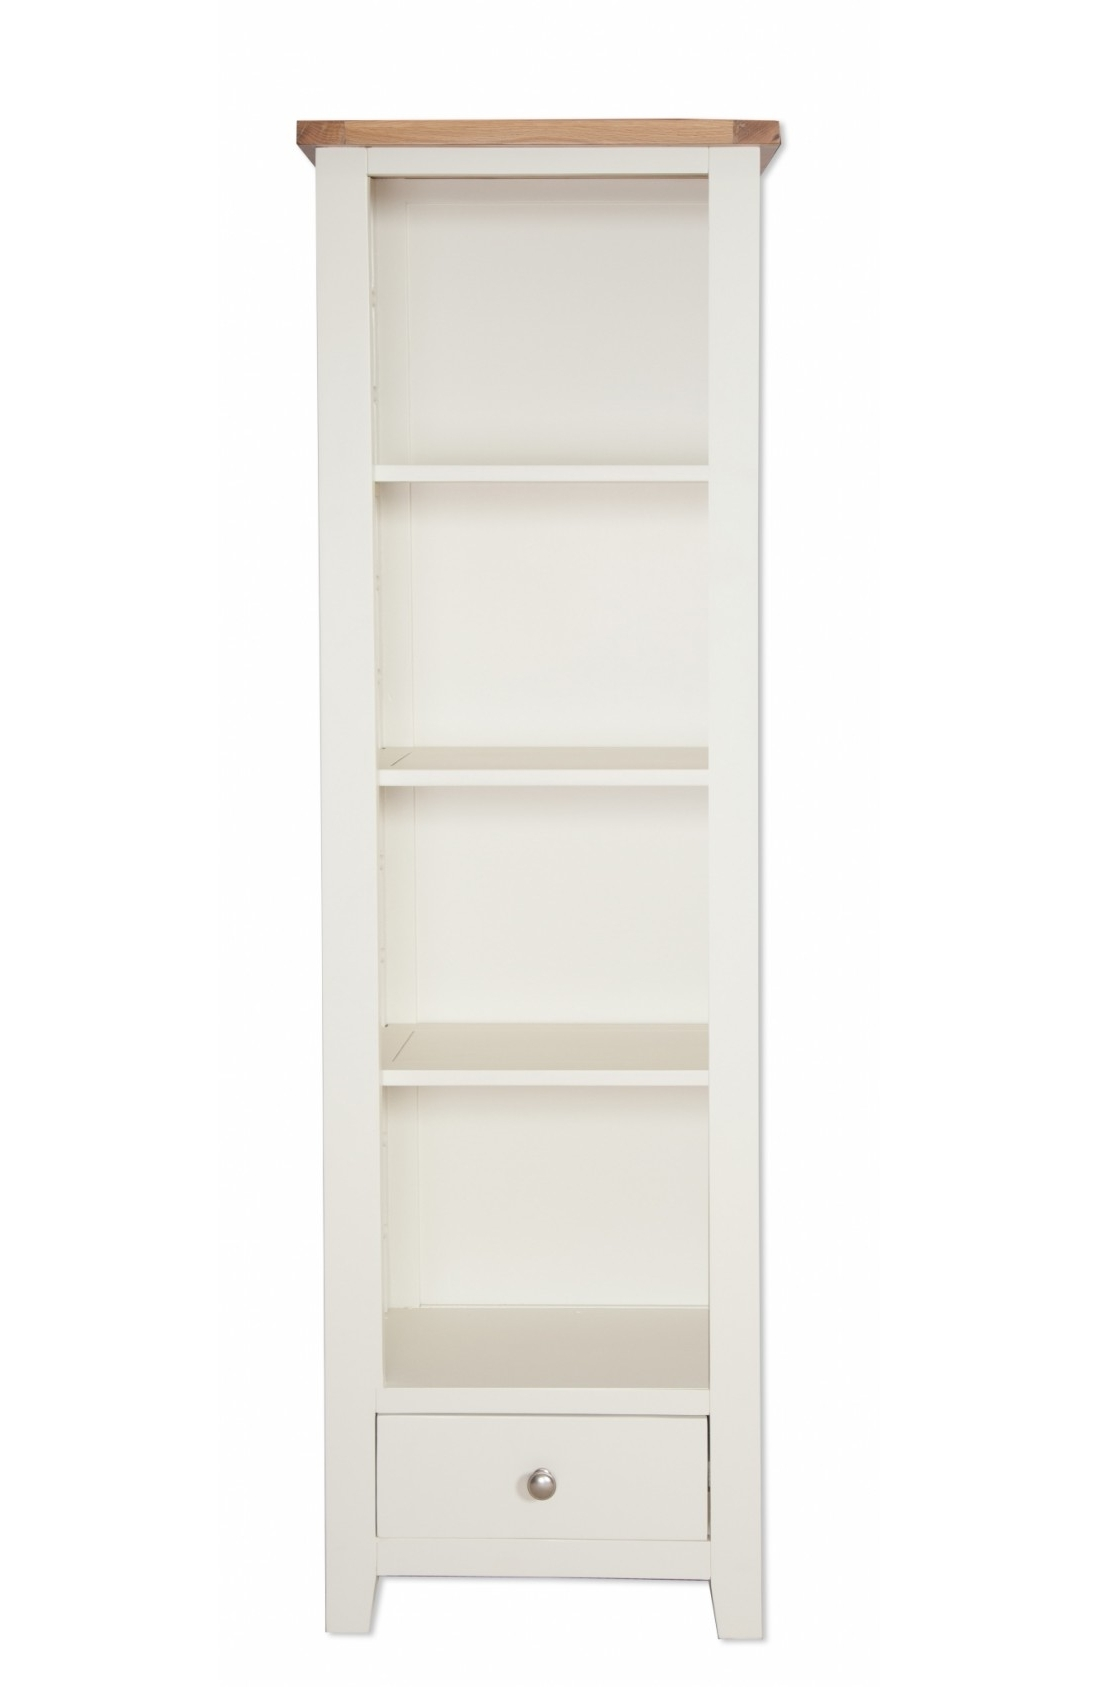 Painted Oak Bookcases Regarding Most Popular Oakwood Living Ivory Painted Oak Slim Bookcase 56 X 32 X 180 Cm (View 12 of 15)